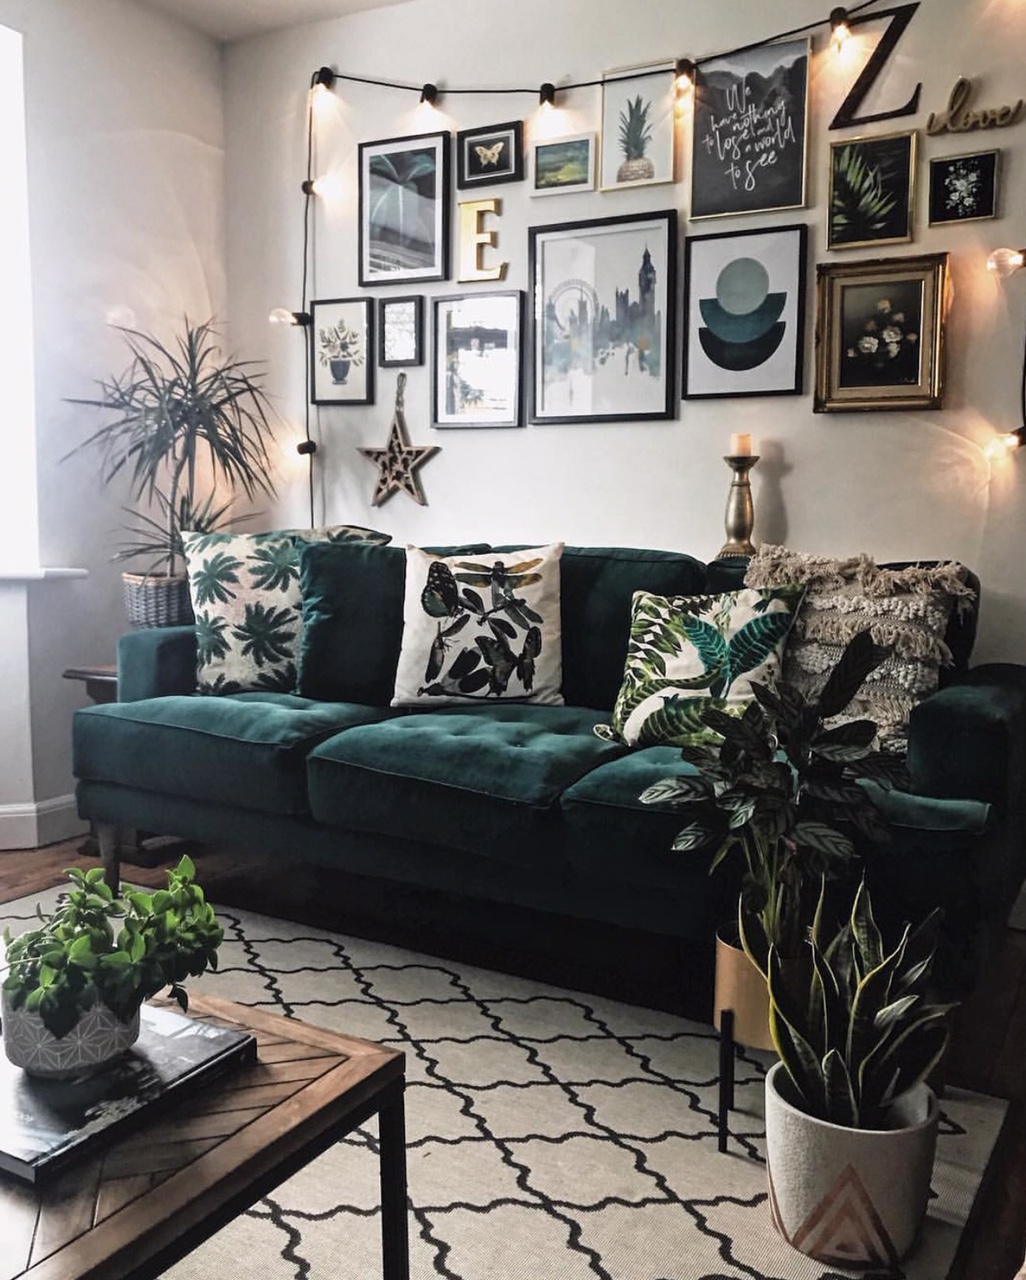 The rug is back down, but this sofa is a perfect partner to my green wall!